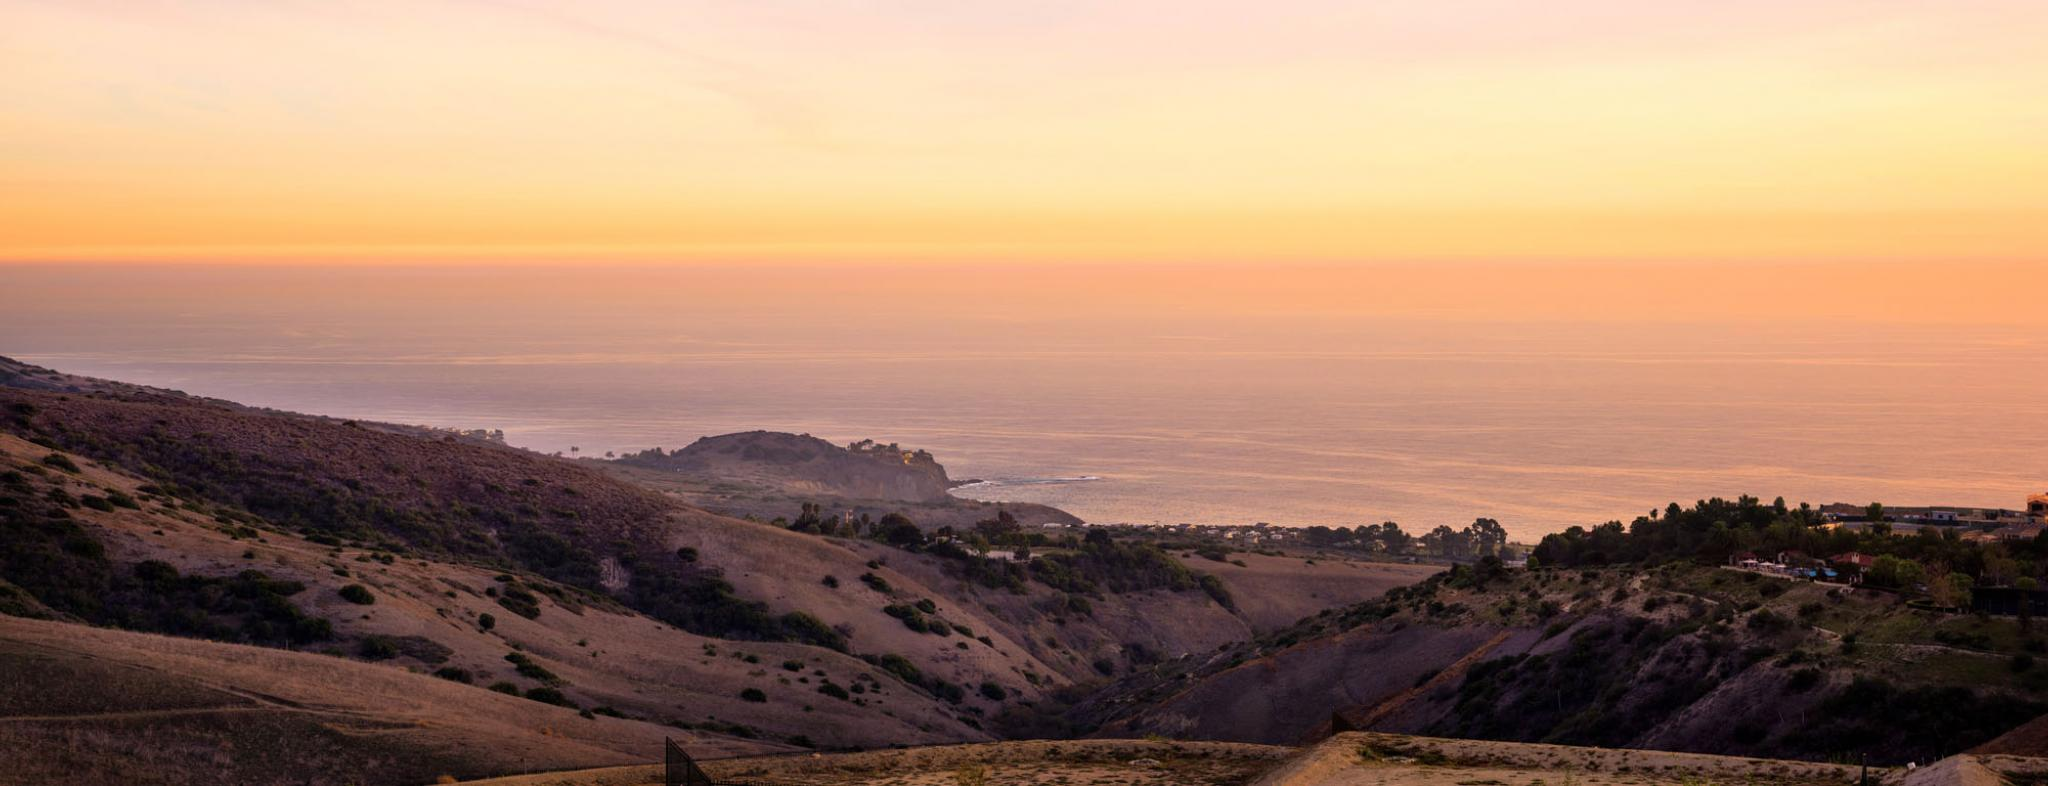 The New Home Company Presents Final Opportunities to Purchase Luxury Residences in Crystal Cove on the Famed Newport Coast